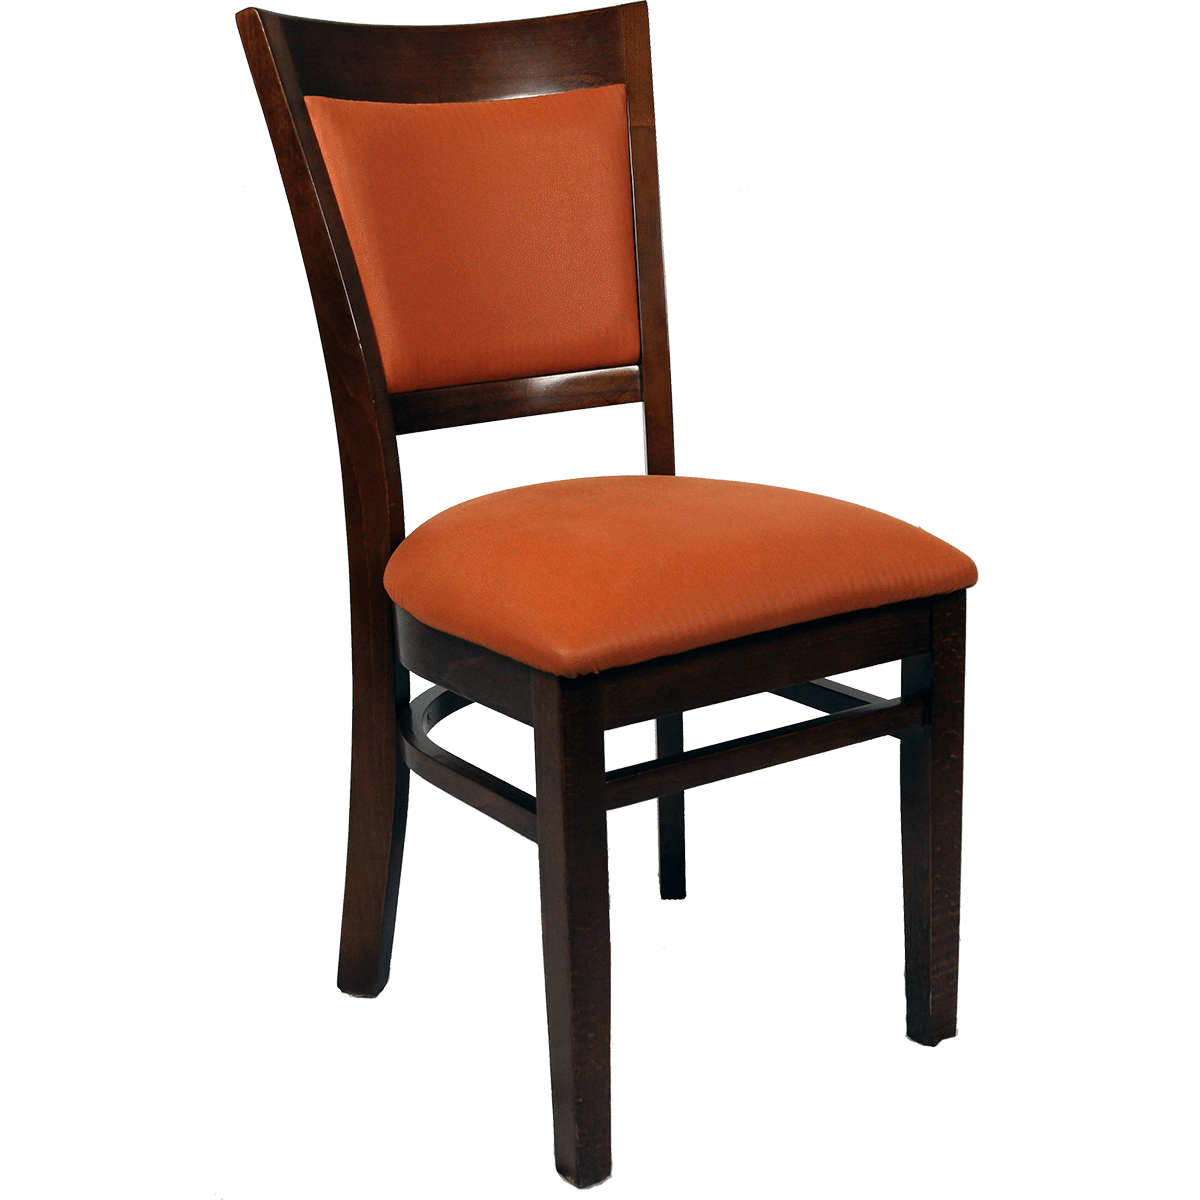 Padded Chair Chairs Wood Upholstered Flared Inset Back Chair